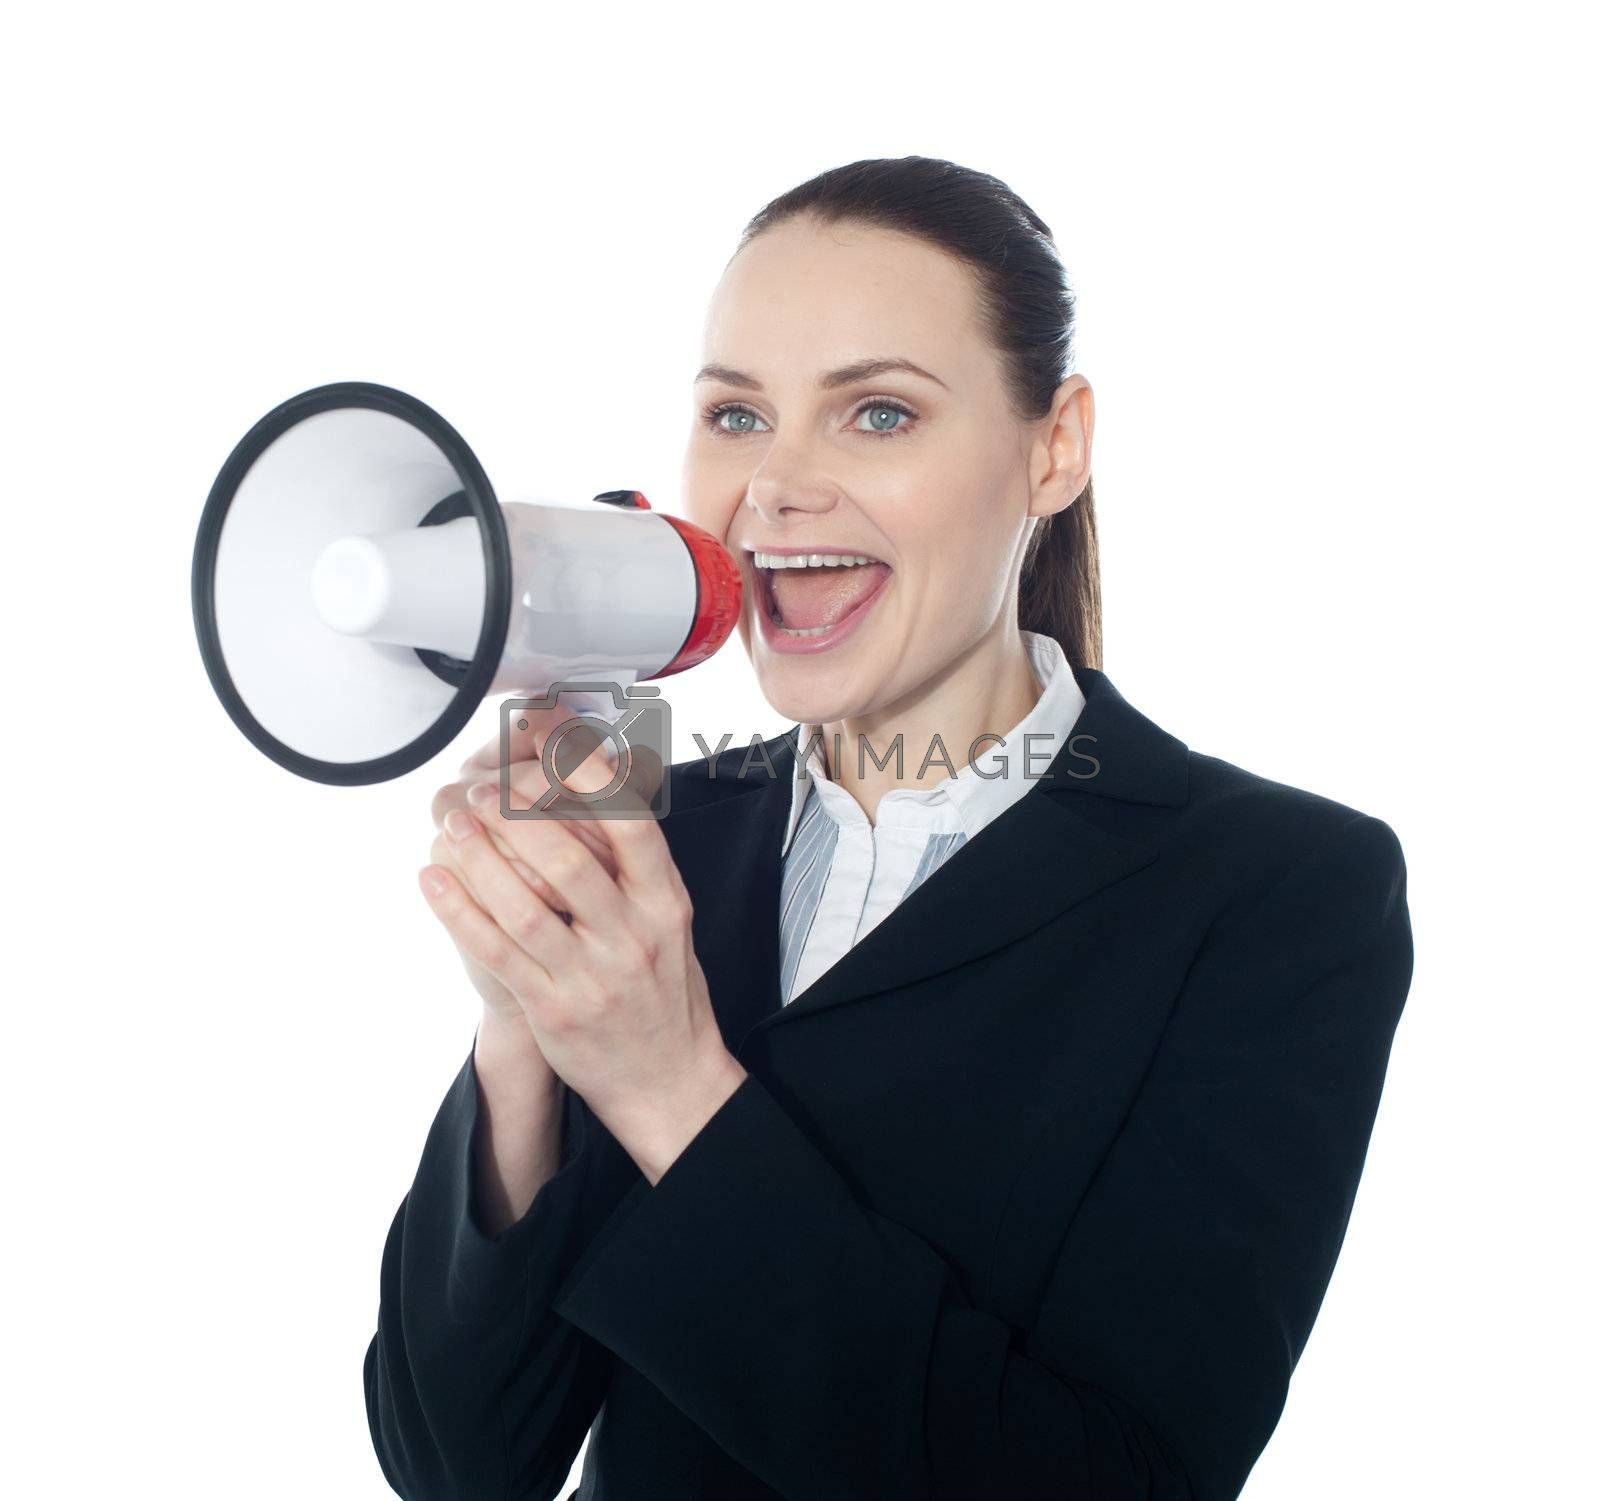 Pretty lady giving instructions with megaphone against white background